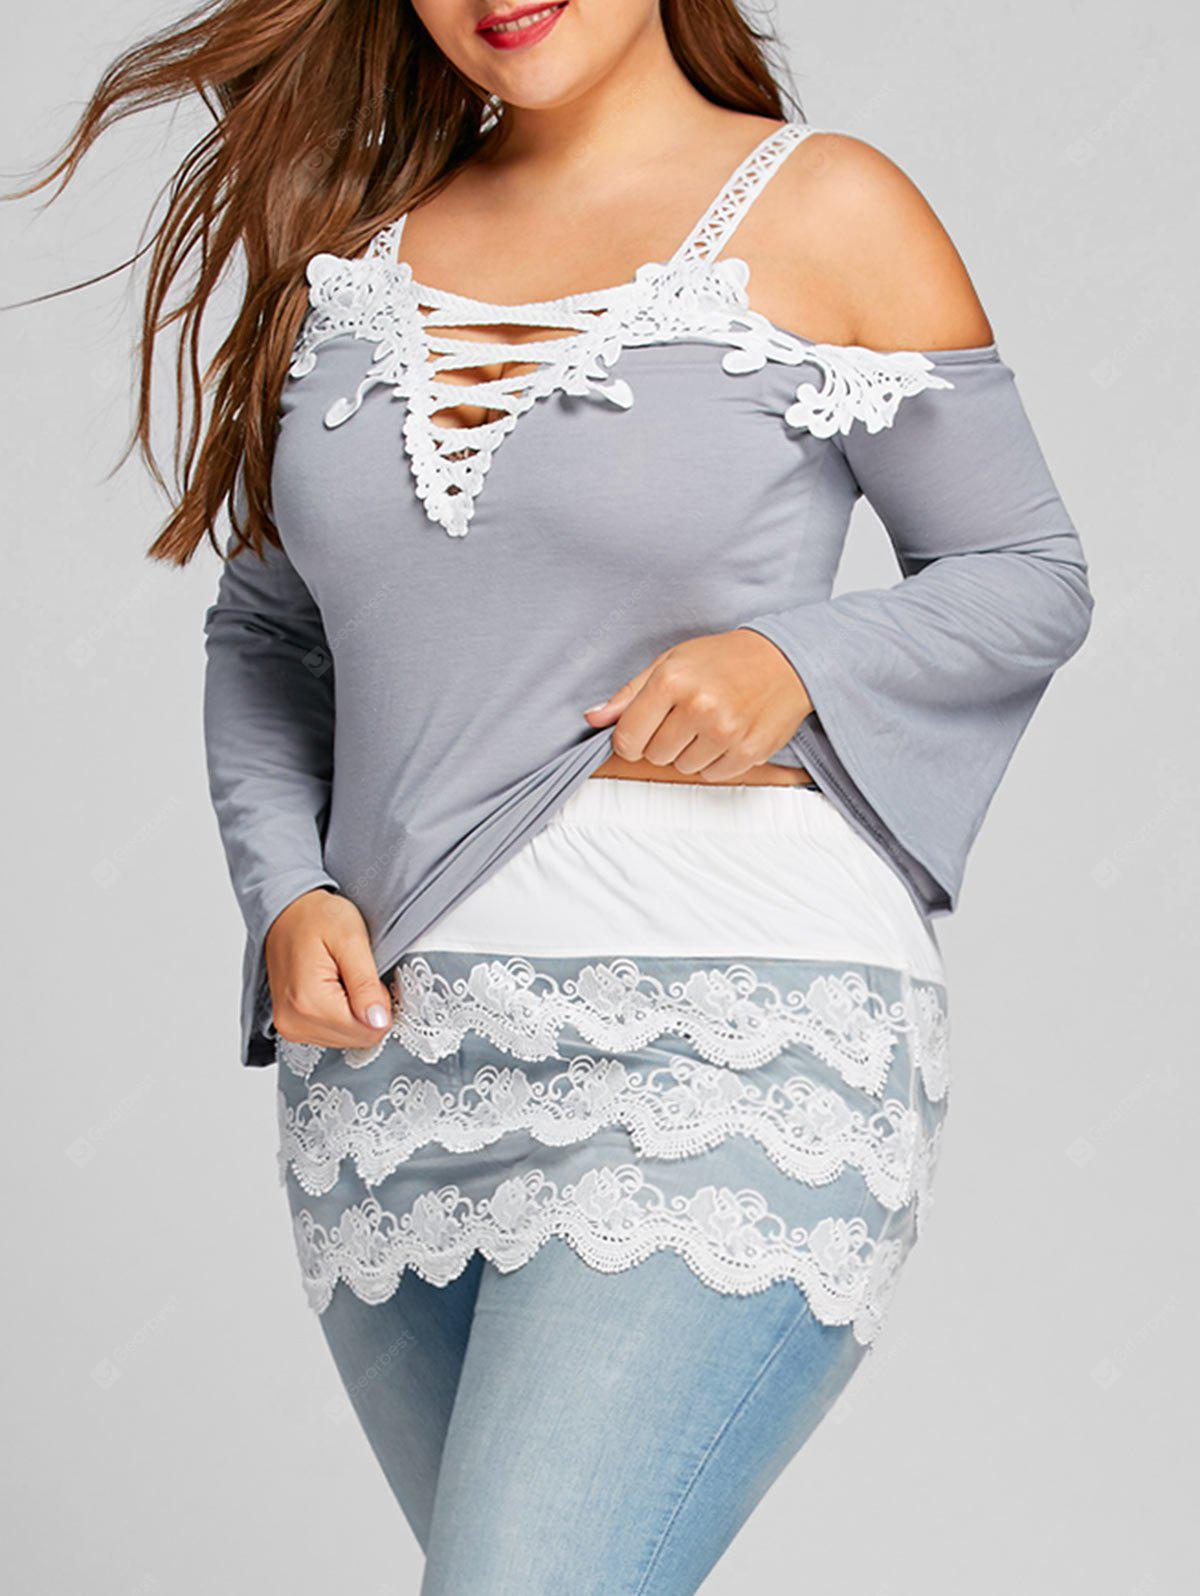 WHITE 4XL Plus Size Layered Scalloped Lace Extender Skirt